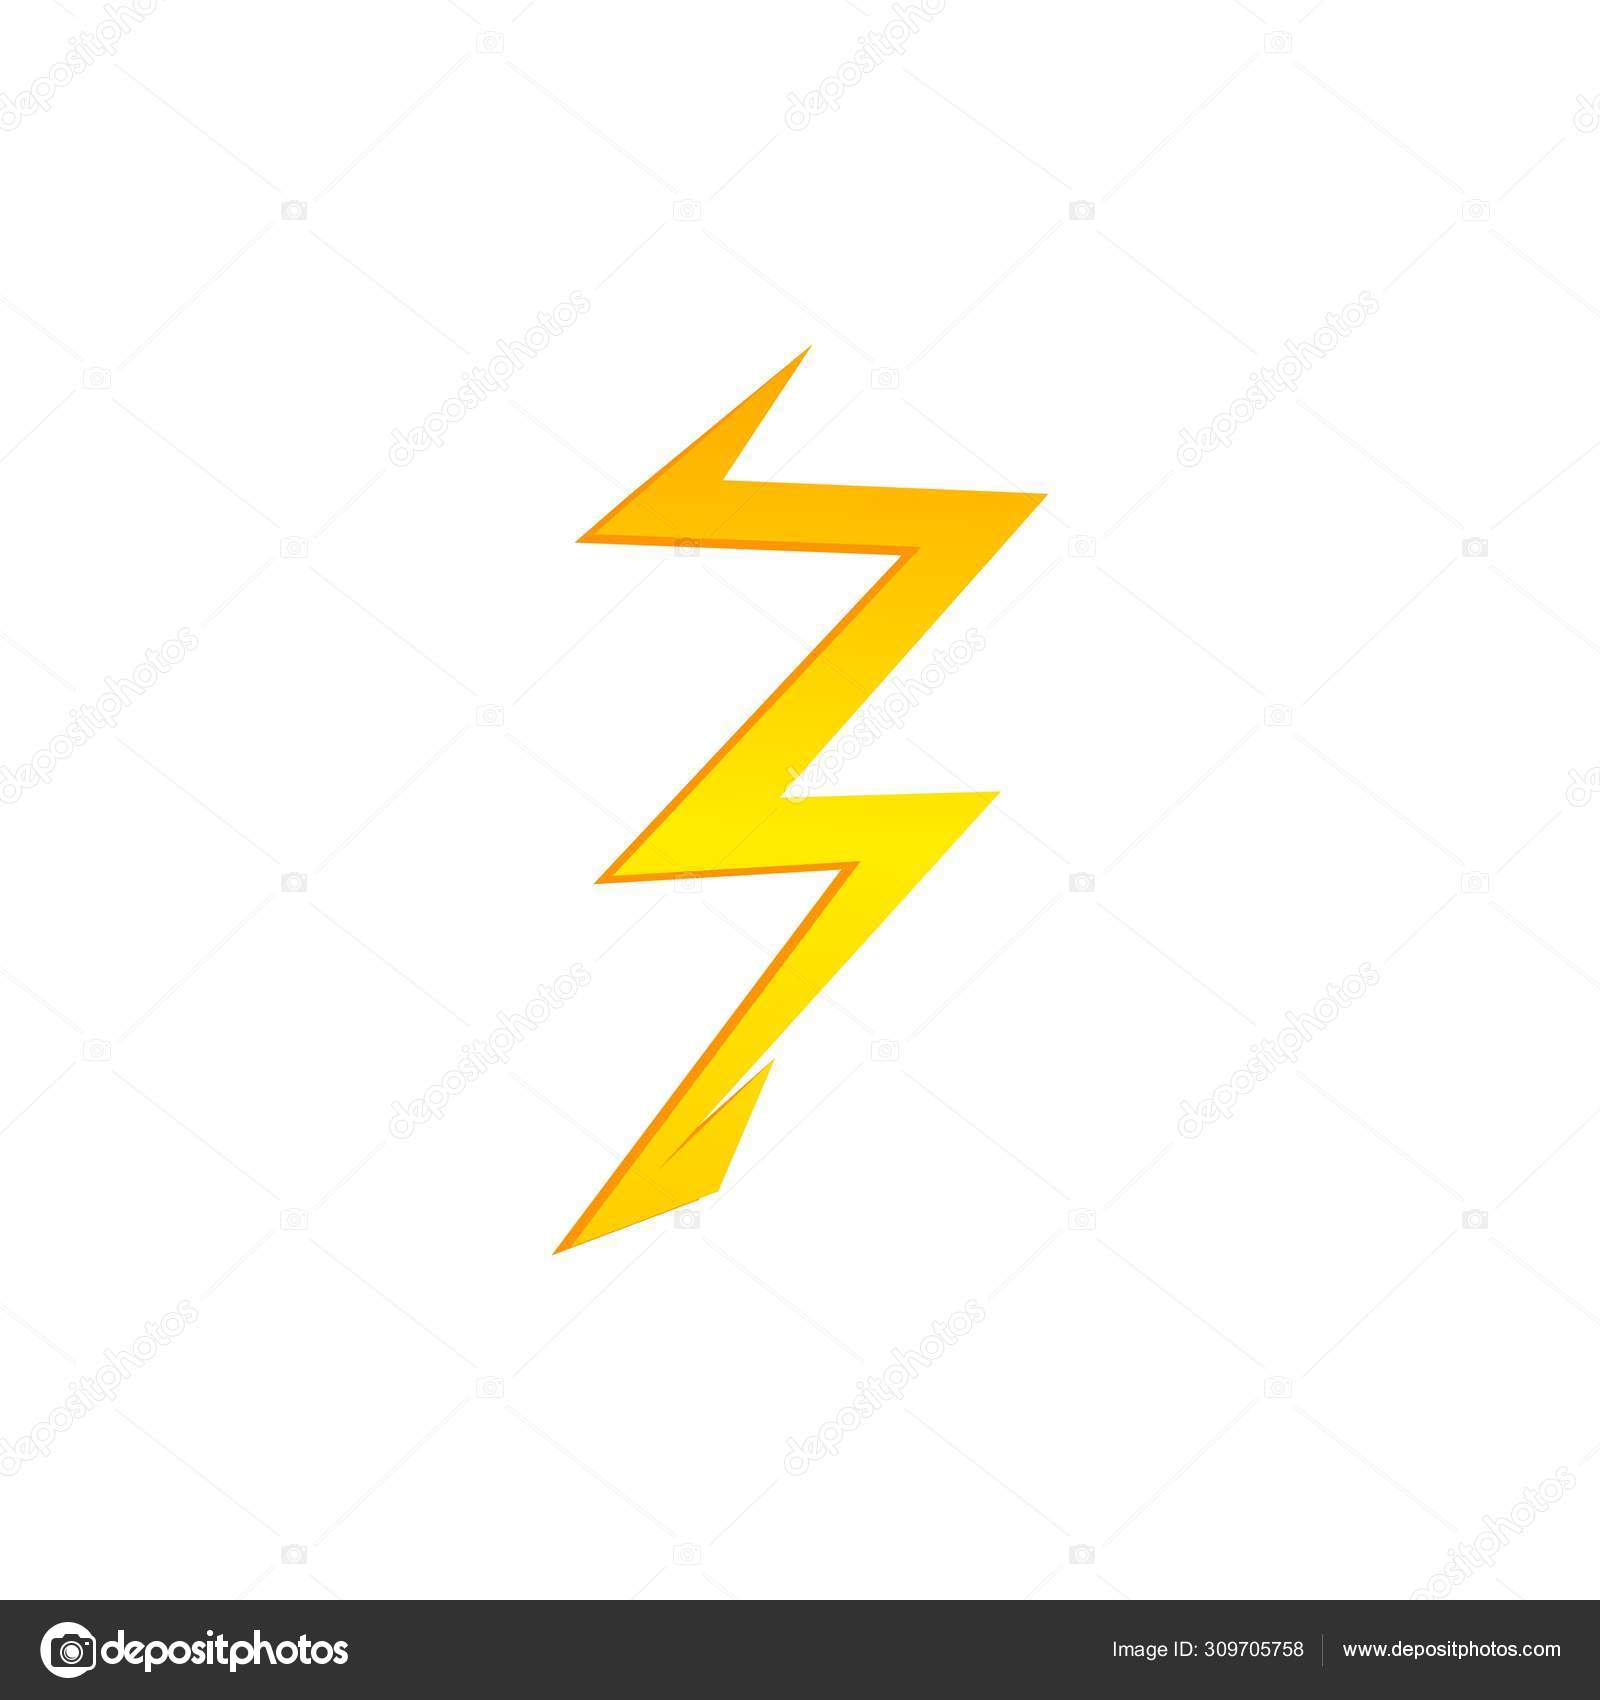 Lighting Thunder Bolt Flash Yellow Icon Set In Flat Style Isolated On White Background Vector Illustration Eps10 Stock Vector C Whilerests 309705758